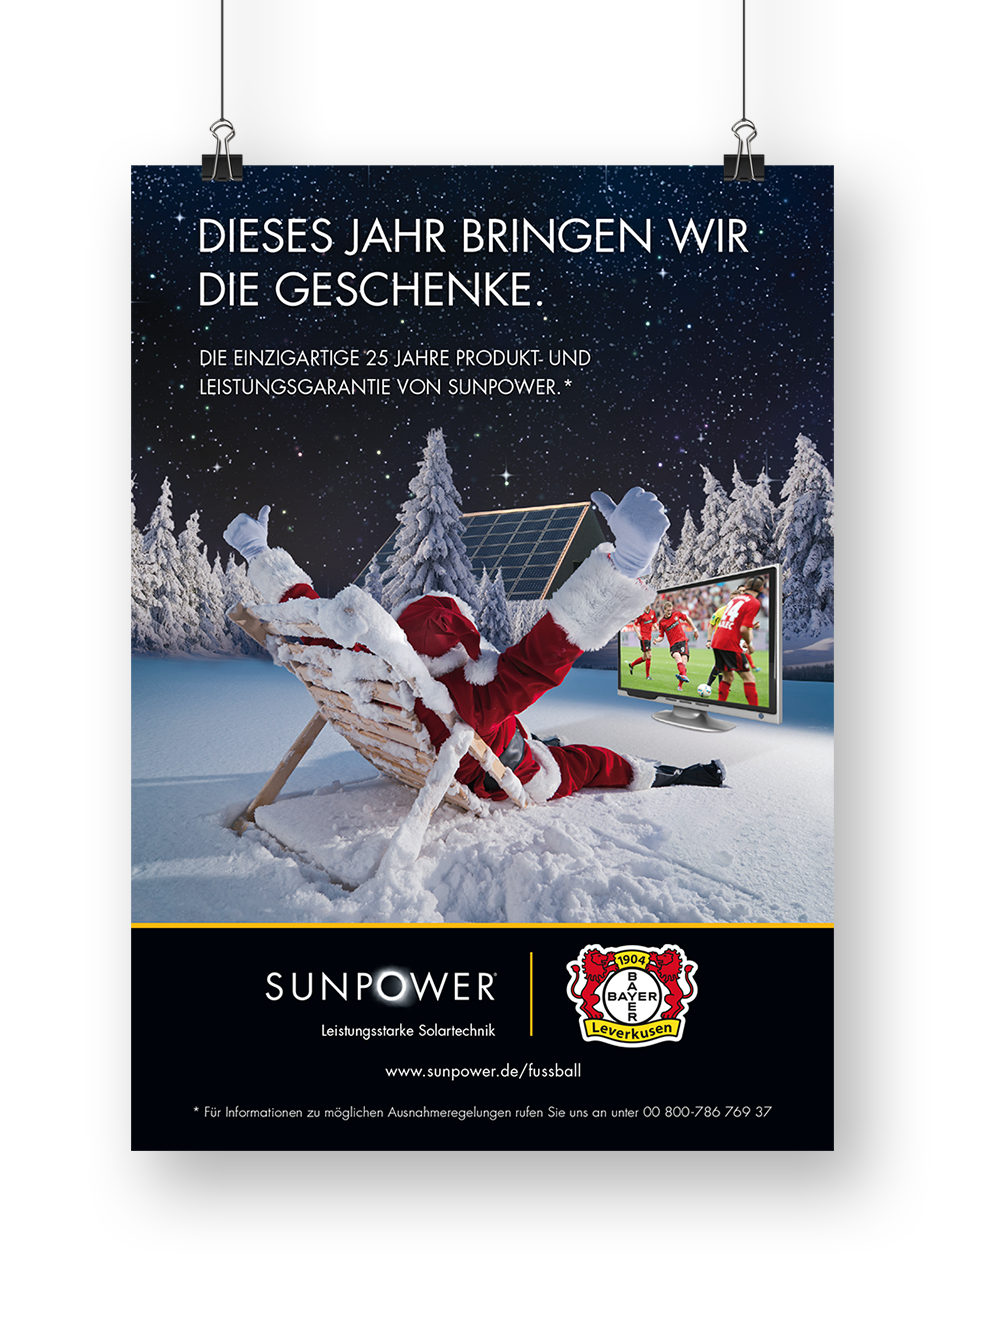 SunPower_Bayer_04_Leverkusen_mobile-6